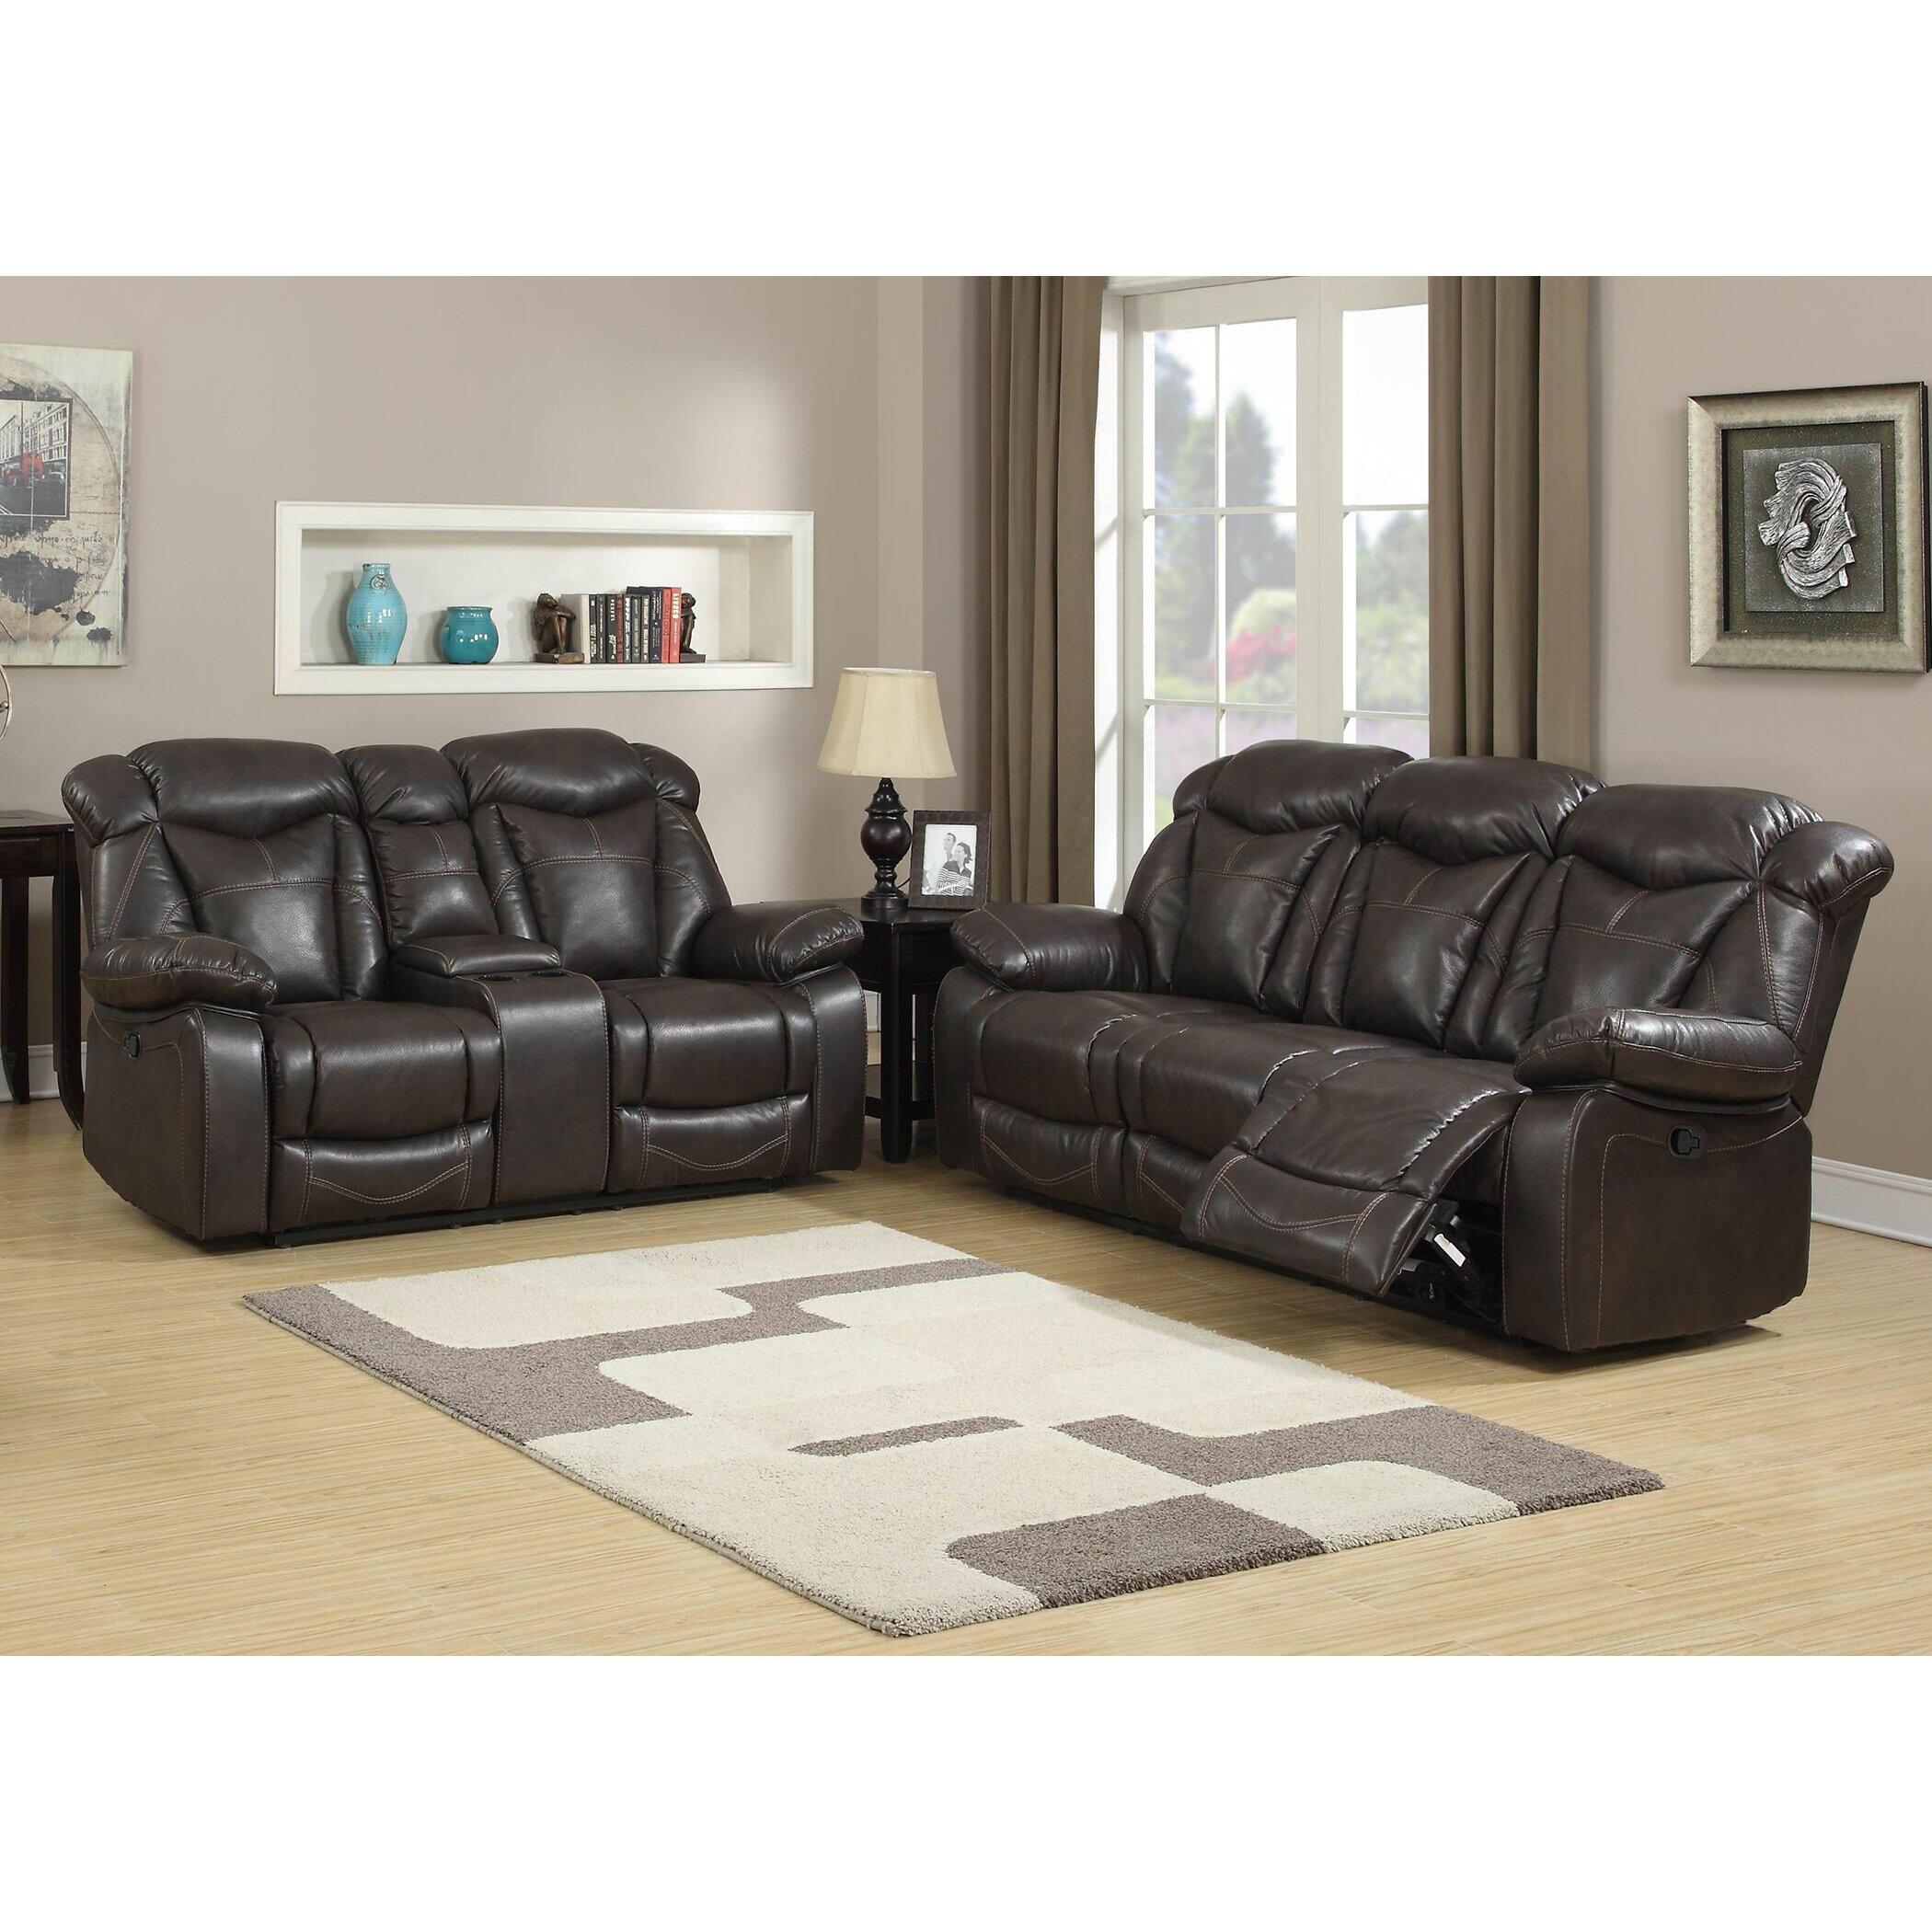 Ac Pacific Otto Contemporary 2 Piece Living Room Set Wayfair